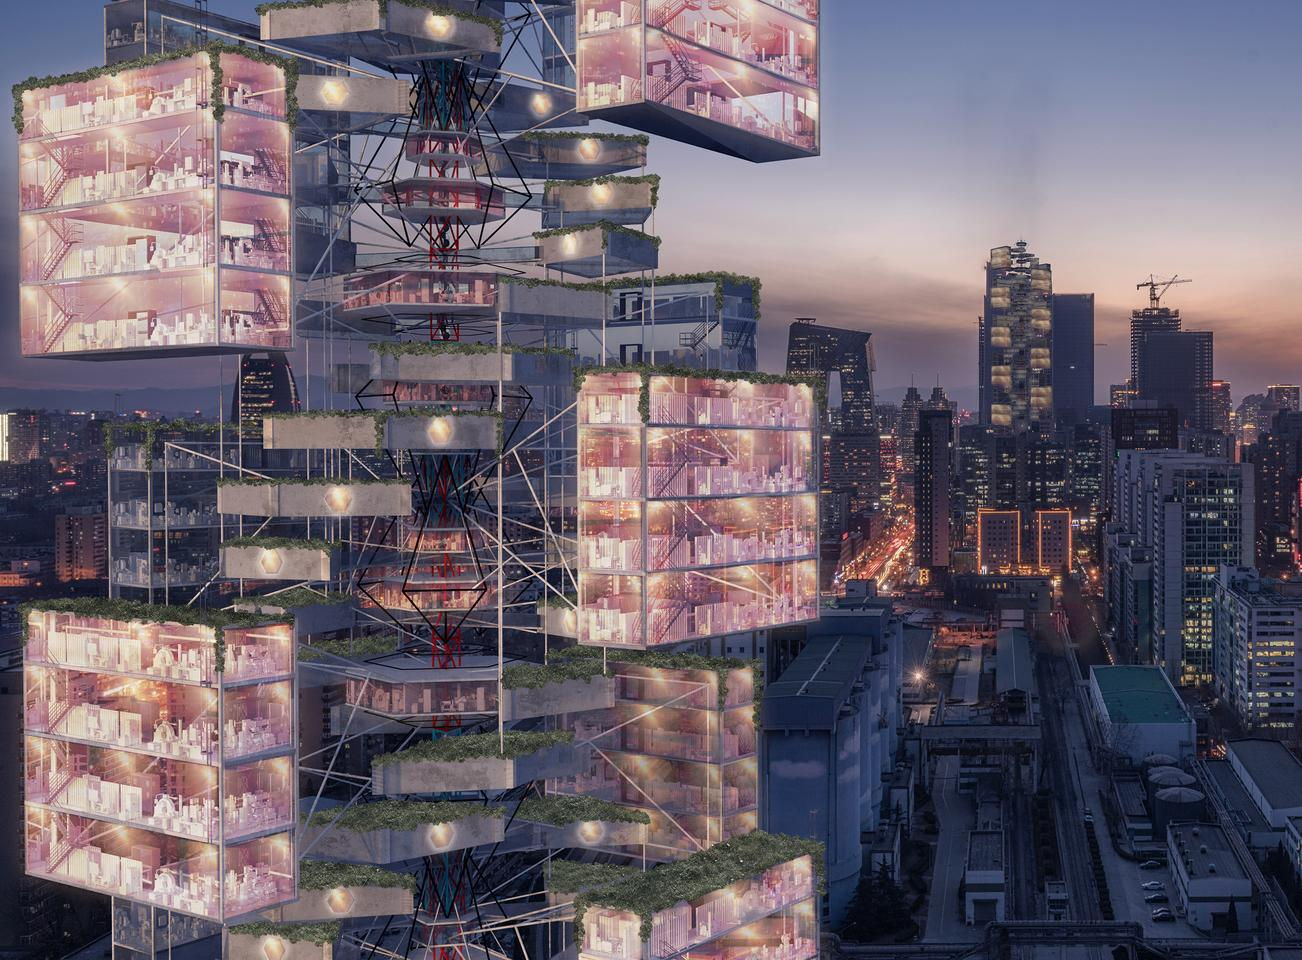 Taking out first place in the eVolo 2020 Skyscraper Competition was Epidemic Babel, designed by China's D Lee, Gavin Shen, Weiyuan Xu